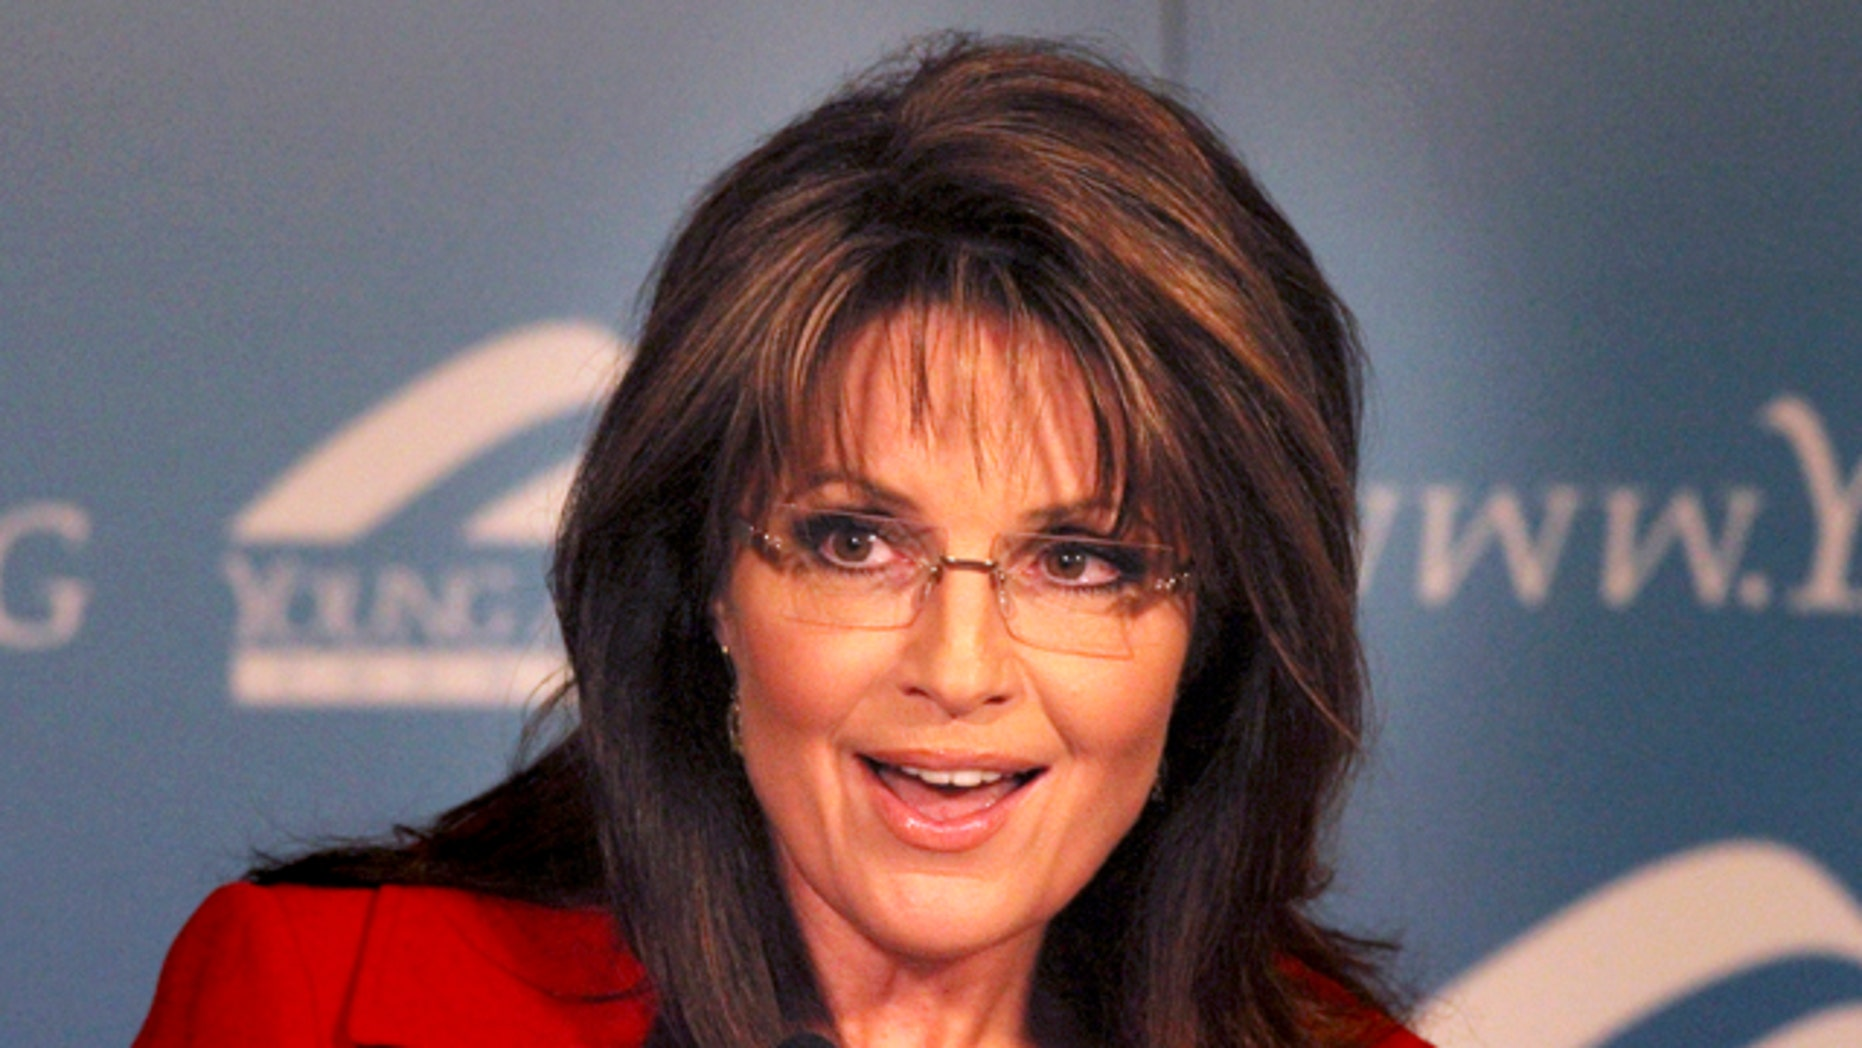 File: Former Republican vice presidential candidate and Alaskan Gov. Sarah Palin speaks at the Reagan Ranch Center in Santa Barbara. (AP)